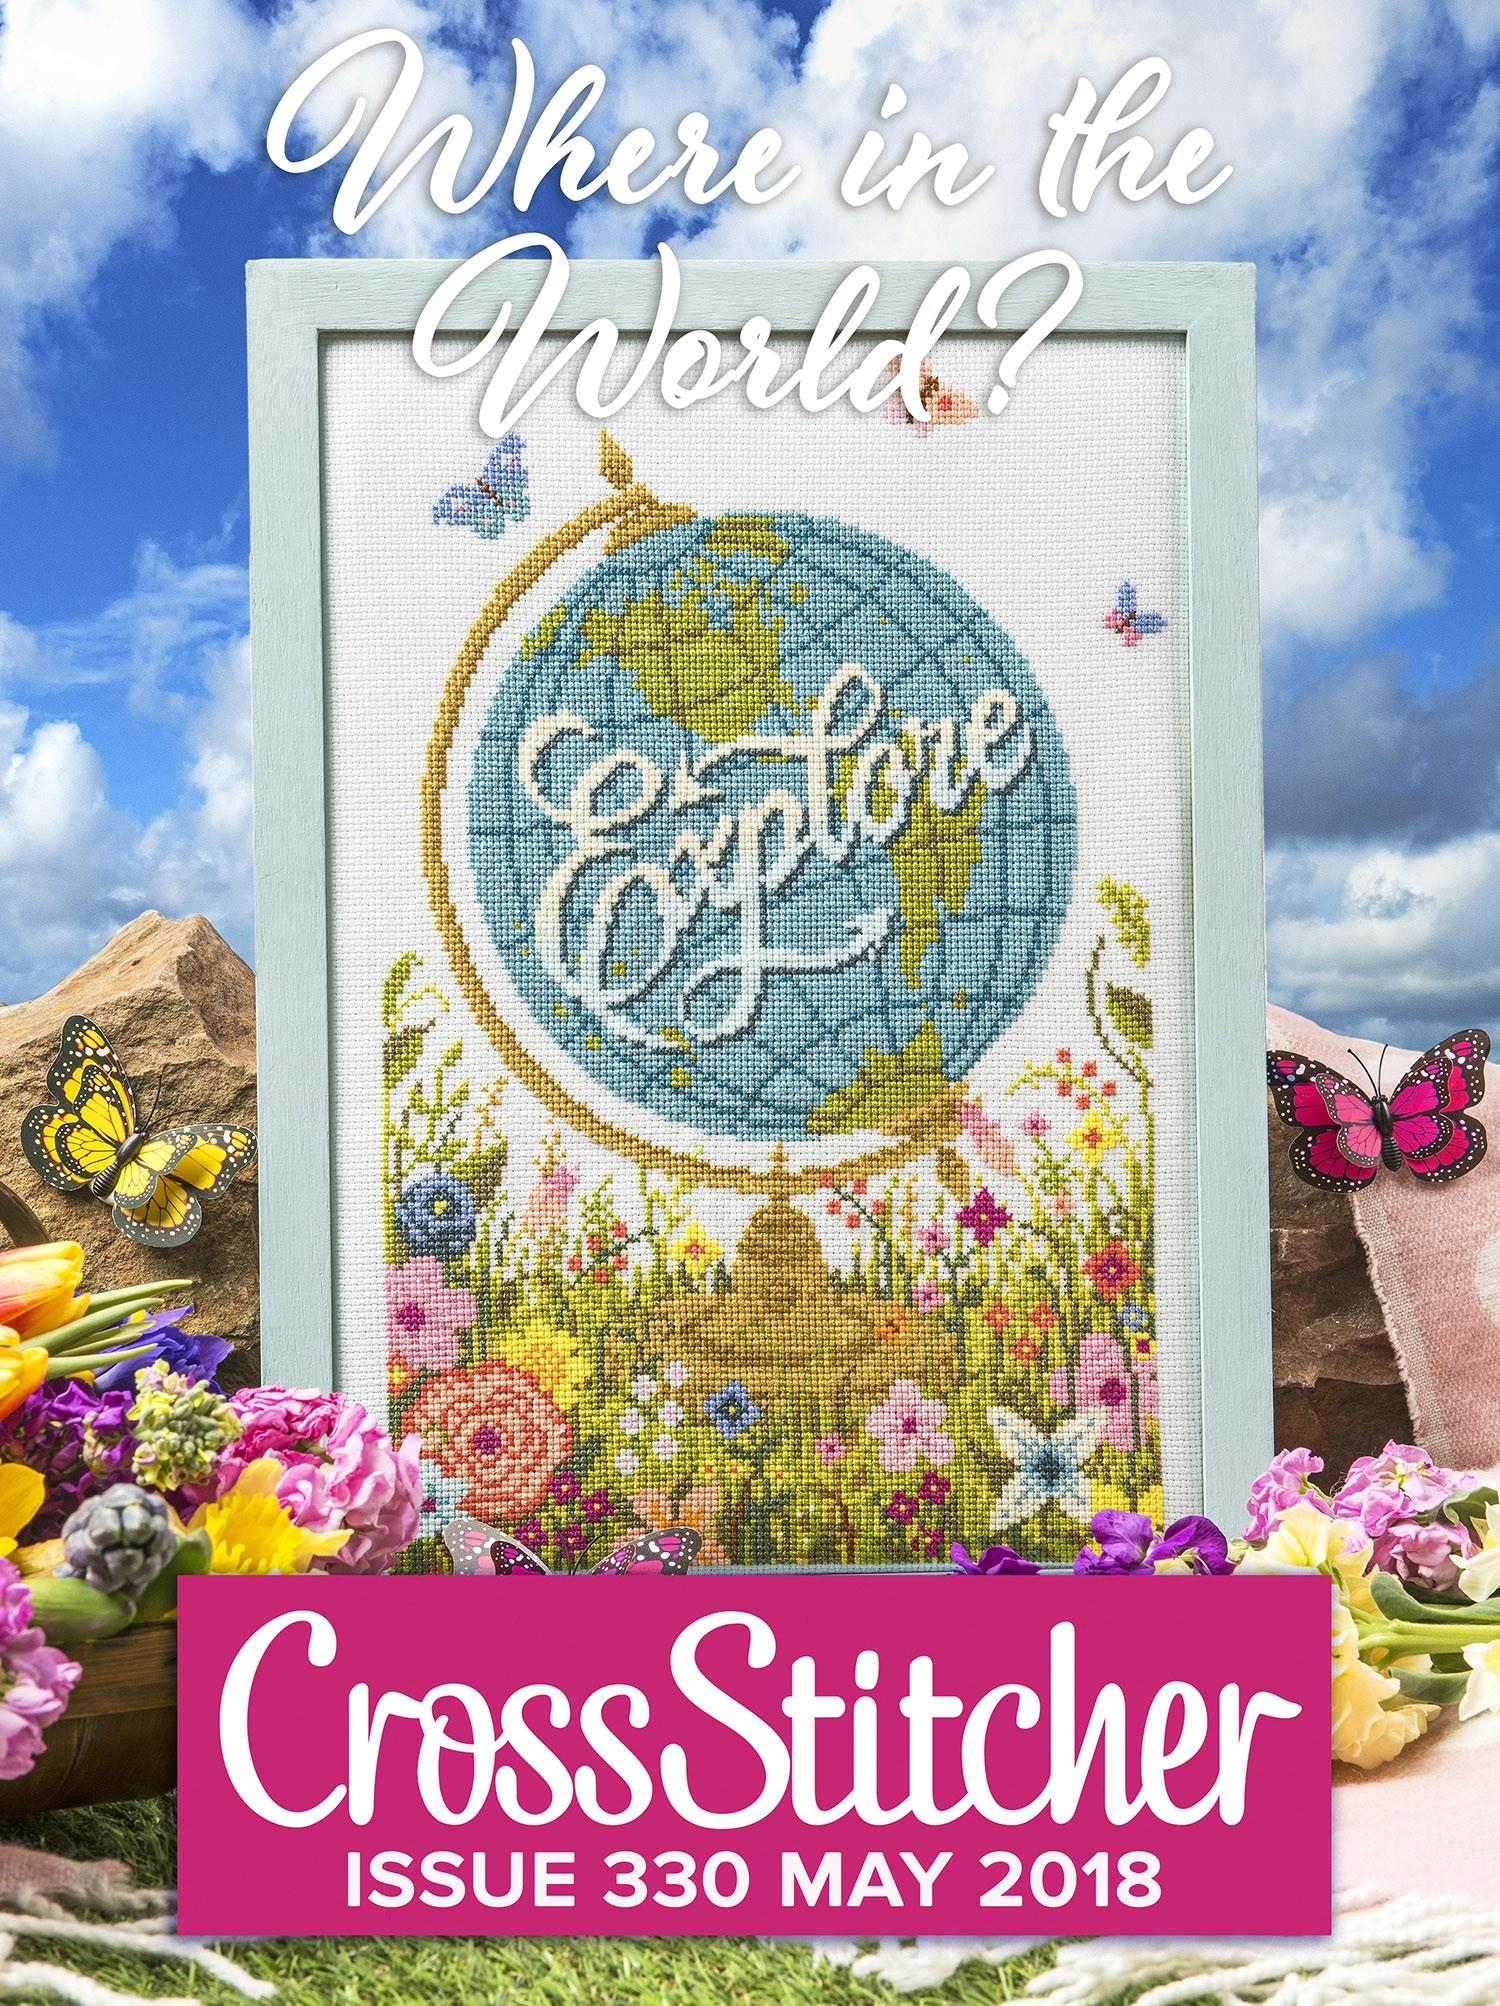 Cross Stitcher Project Pack - Where in the World? Issue 330